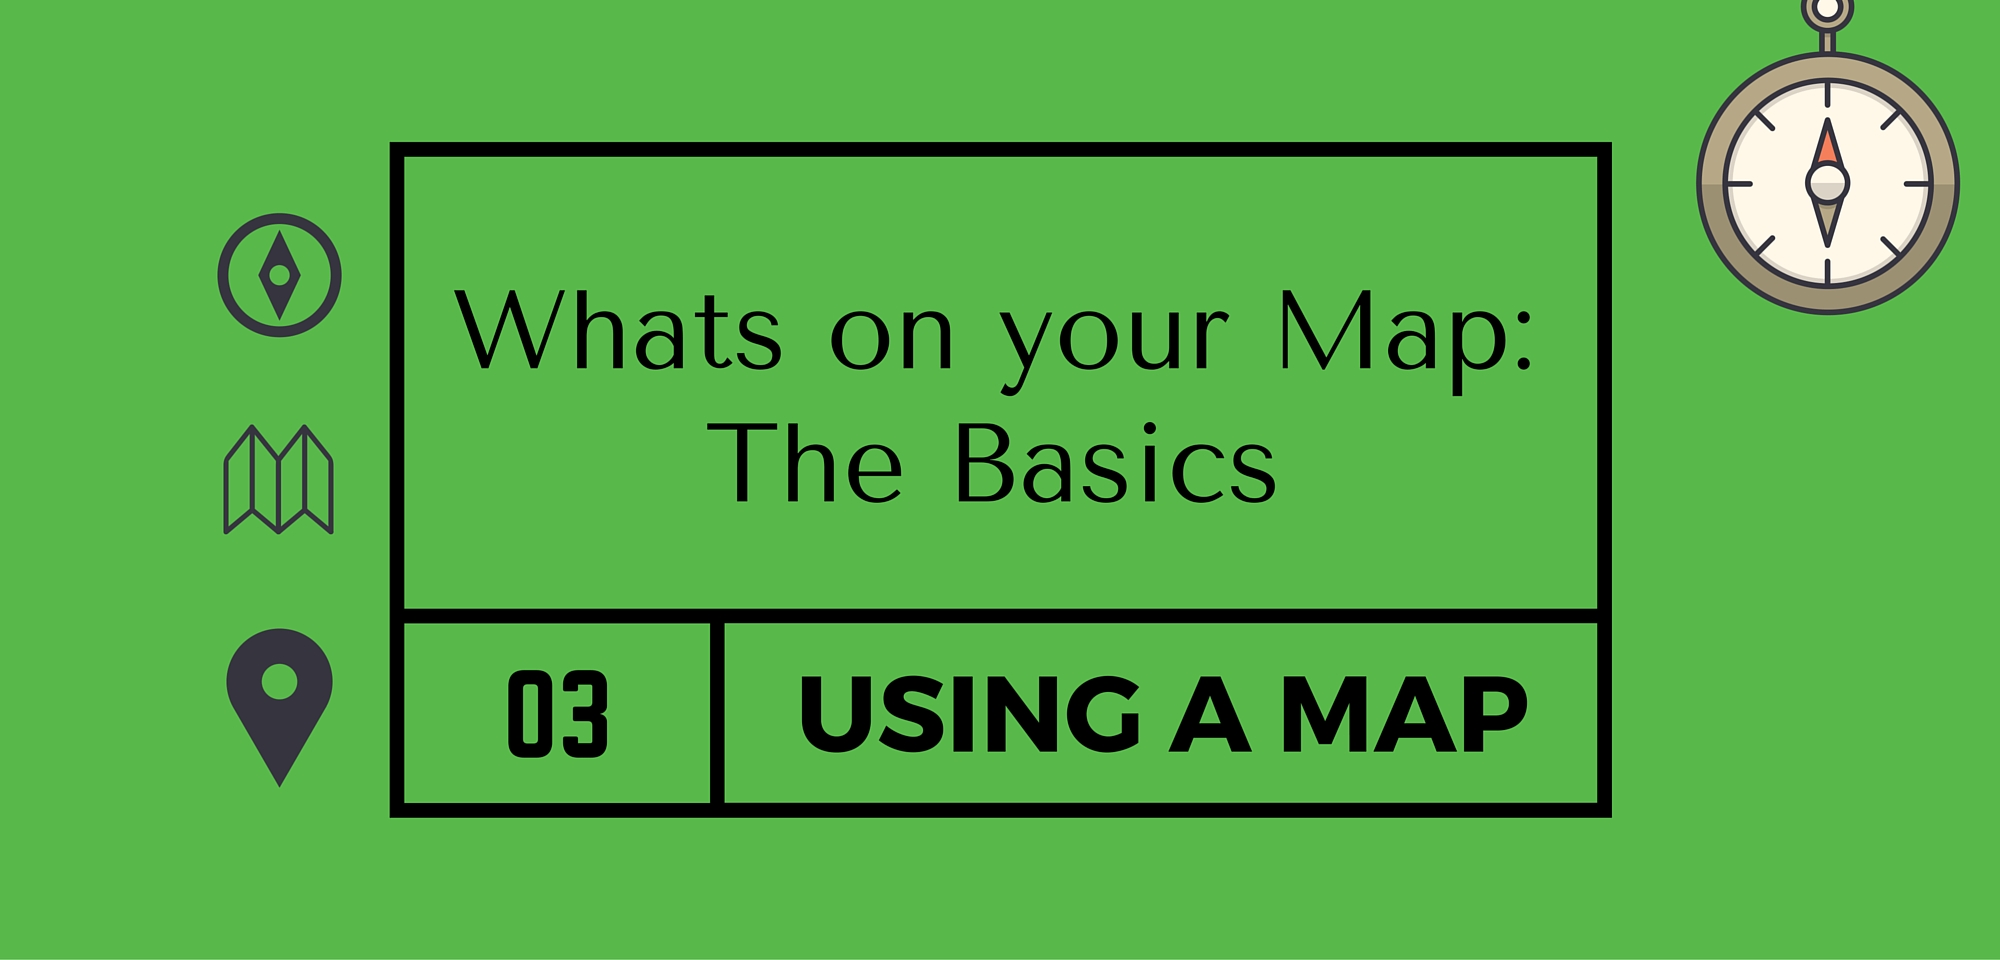 Whats on your Map Basics